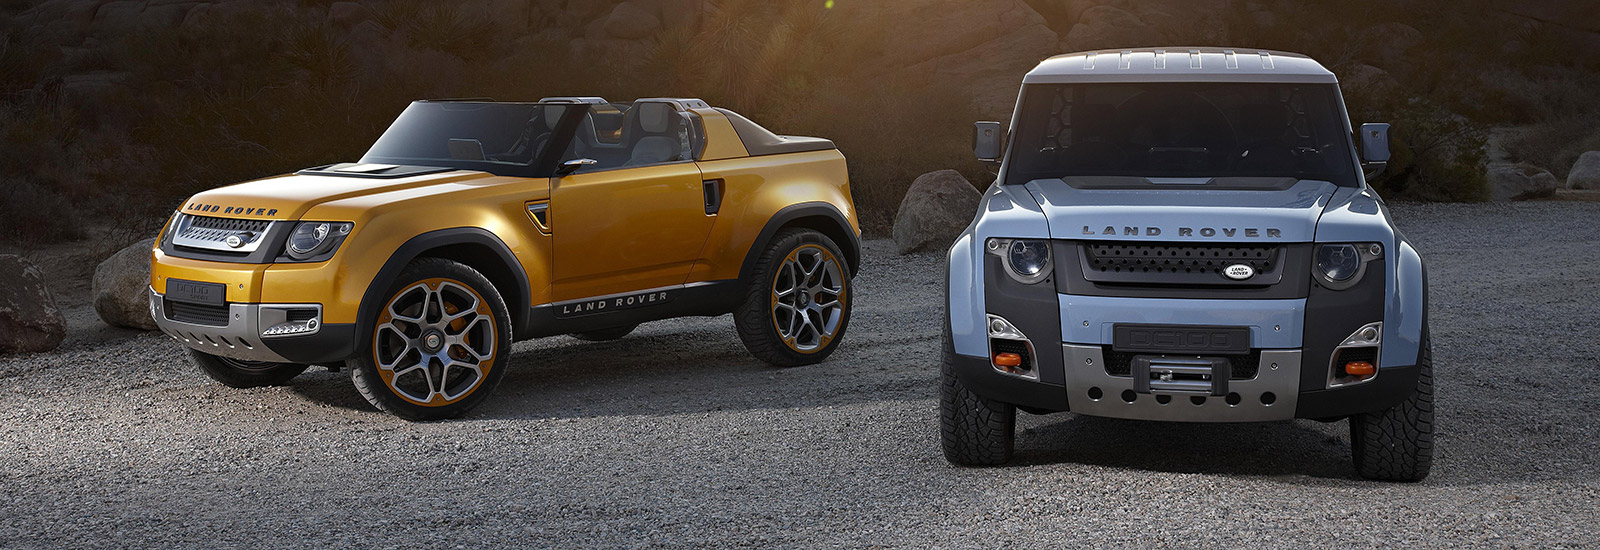 land rover defender usa 2018. plain 2018 land rover defender latest news updated february 2016 to land rover defender usa 2018 y